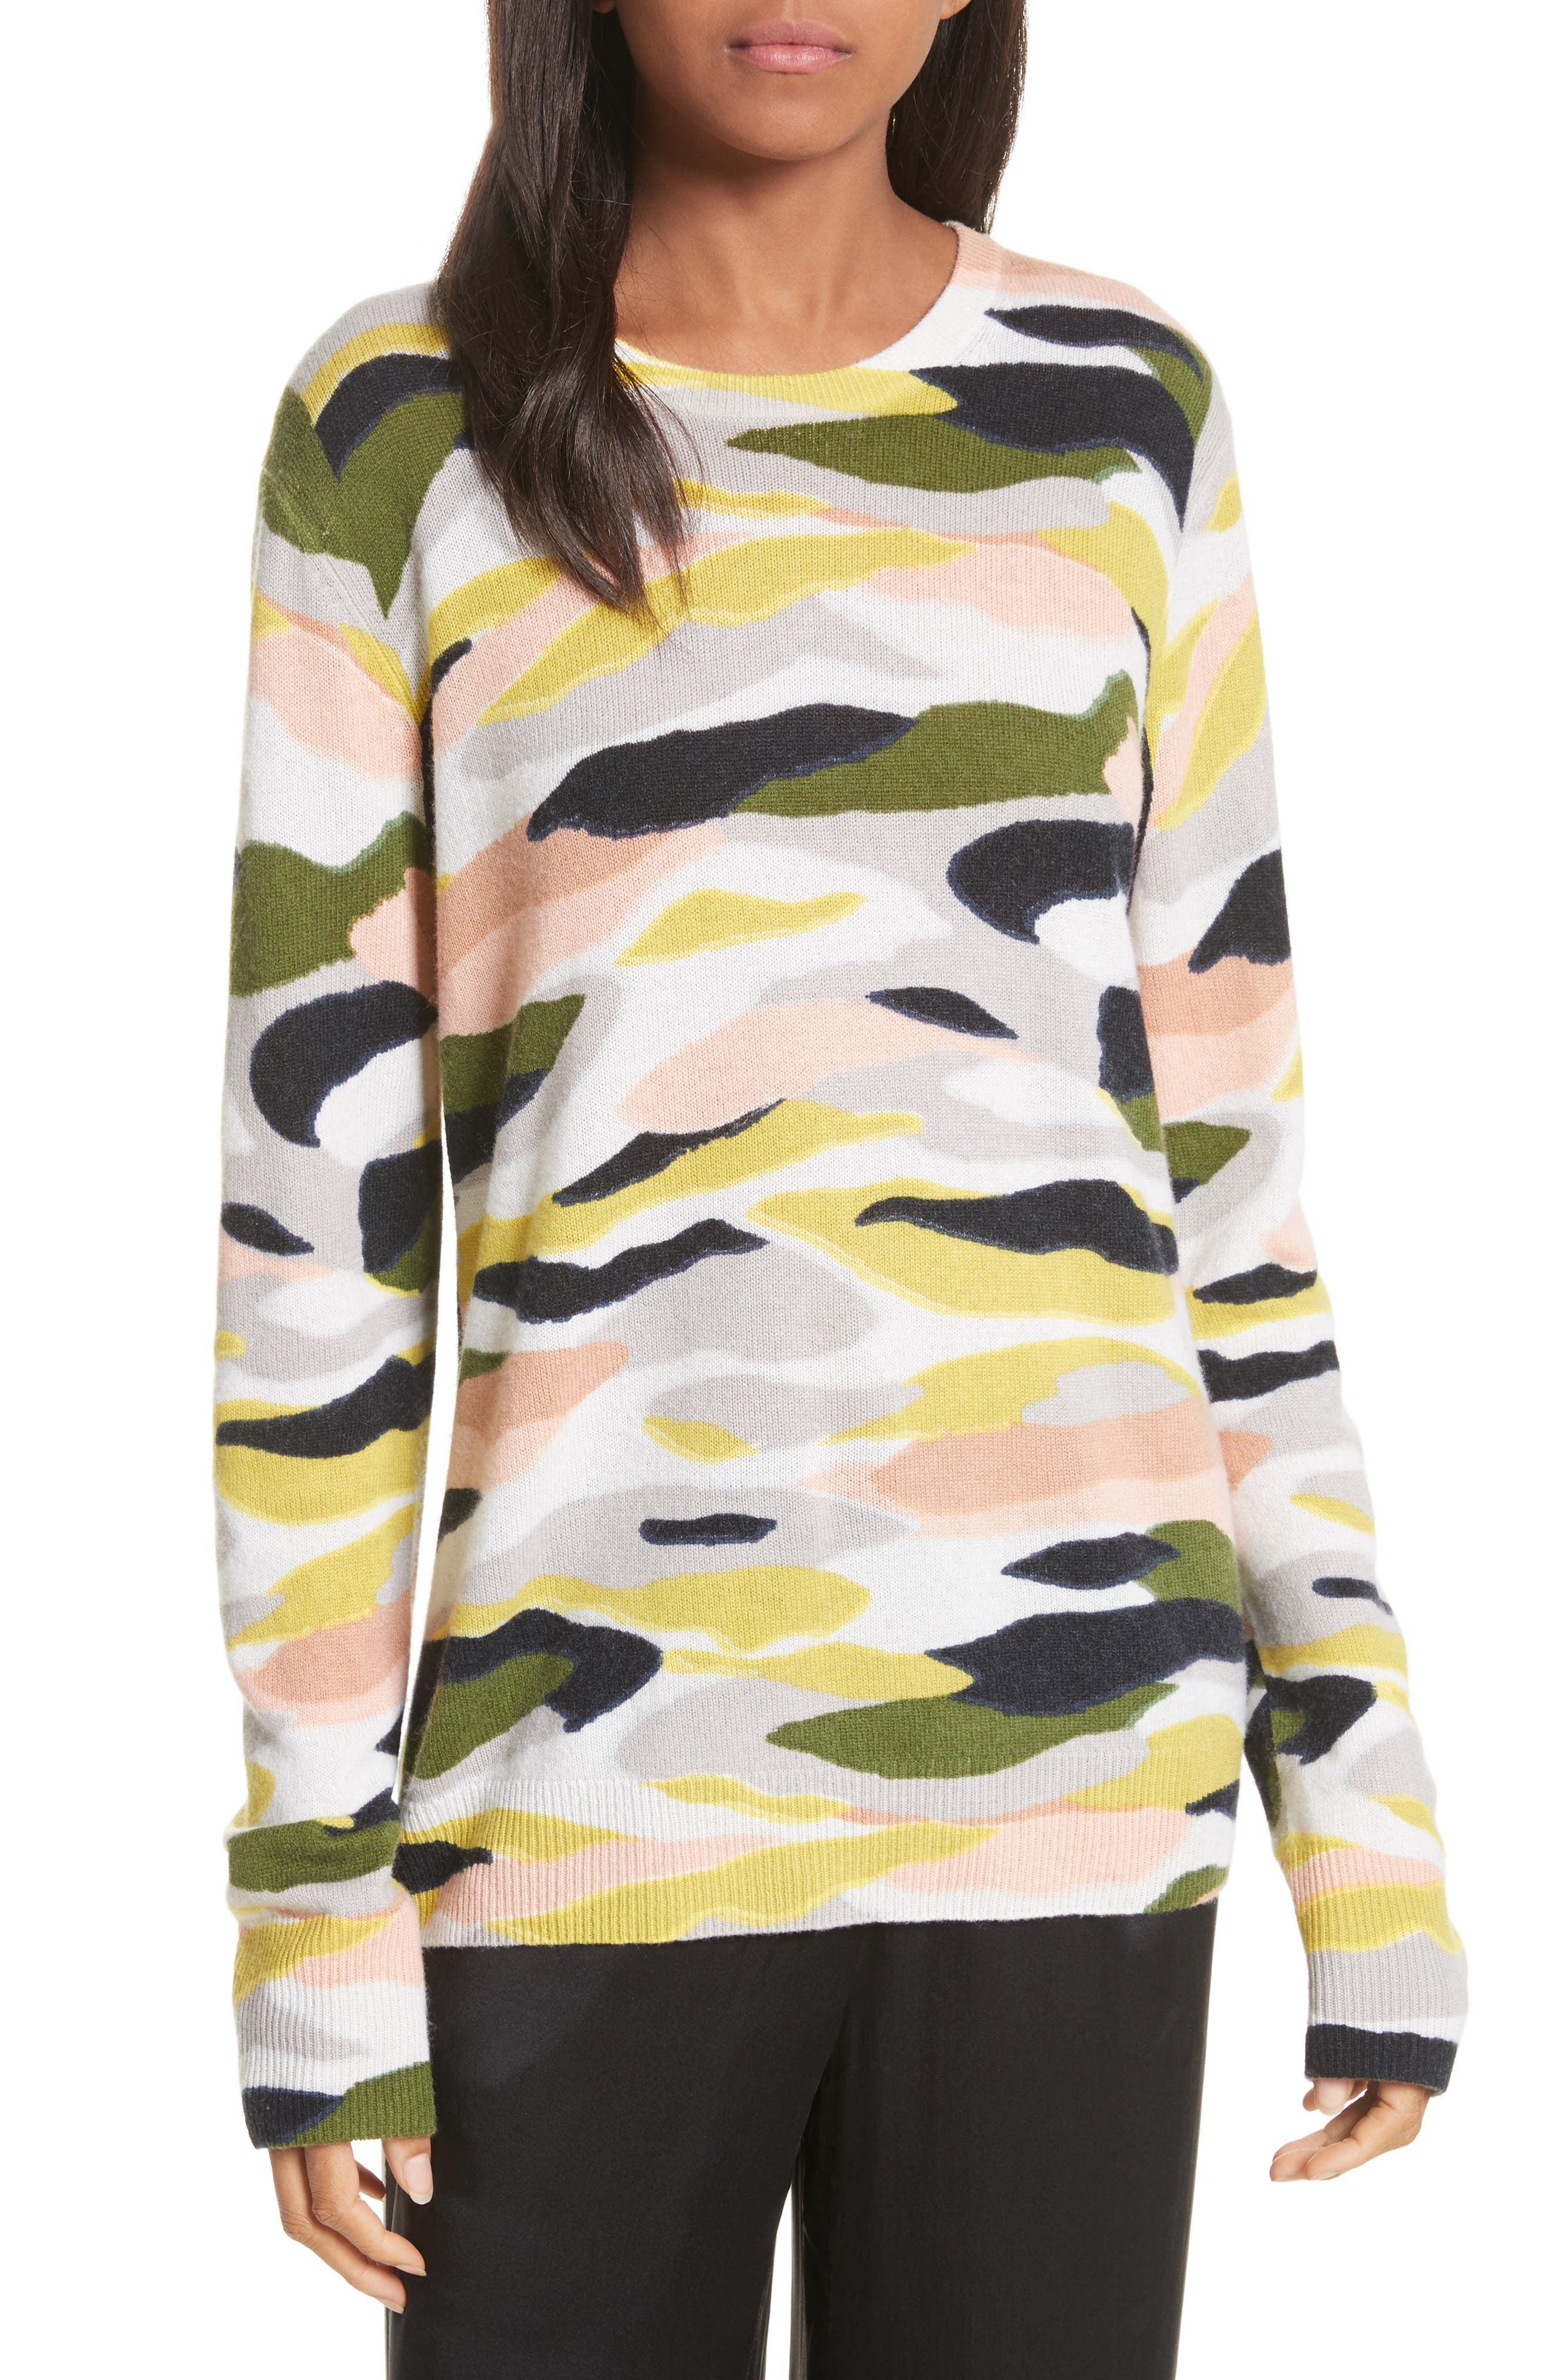 Main Image - Equipment Shane Camo Print Cashmere Sweater